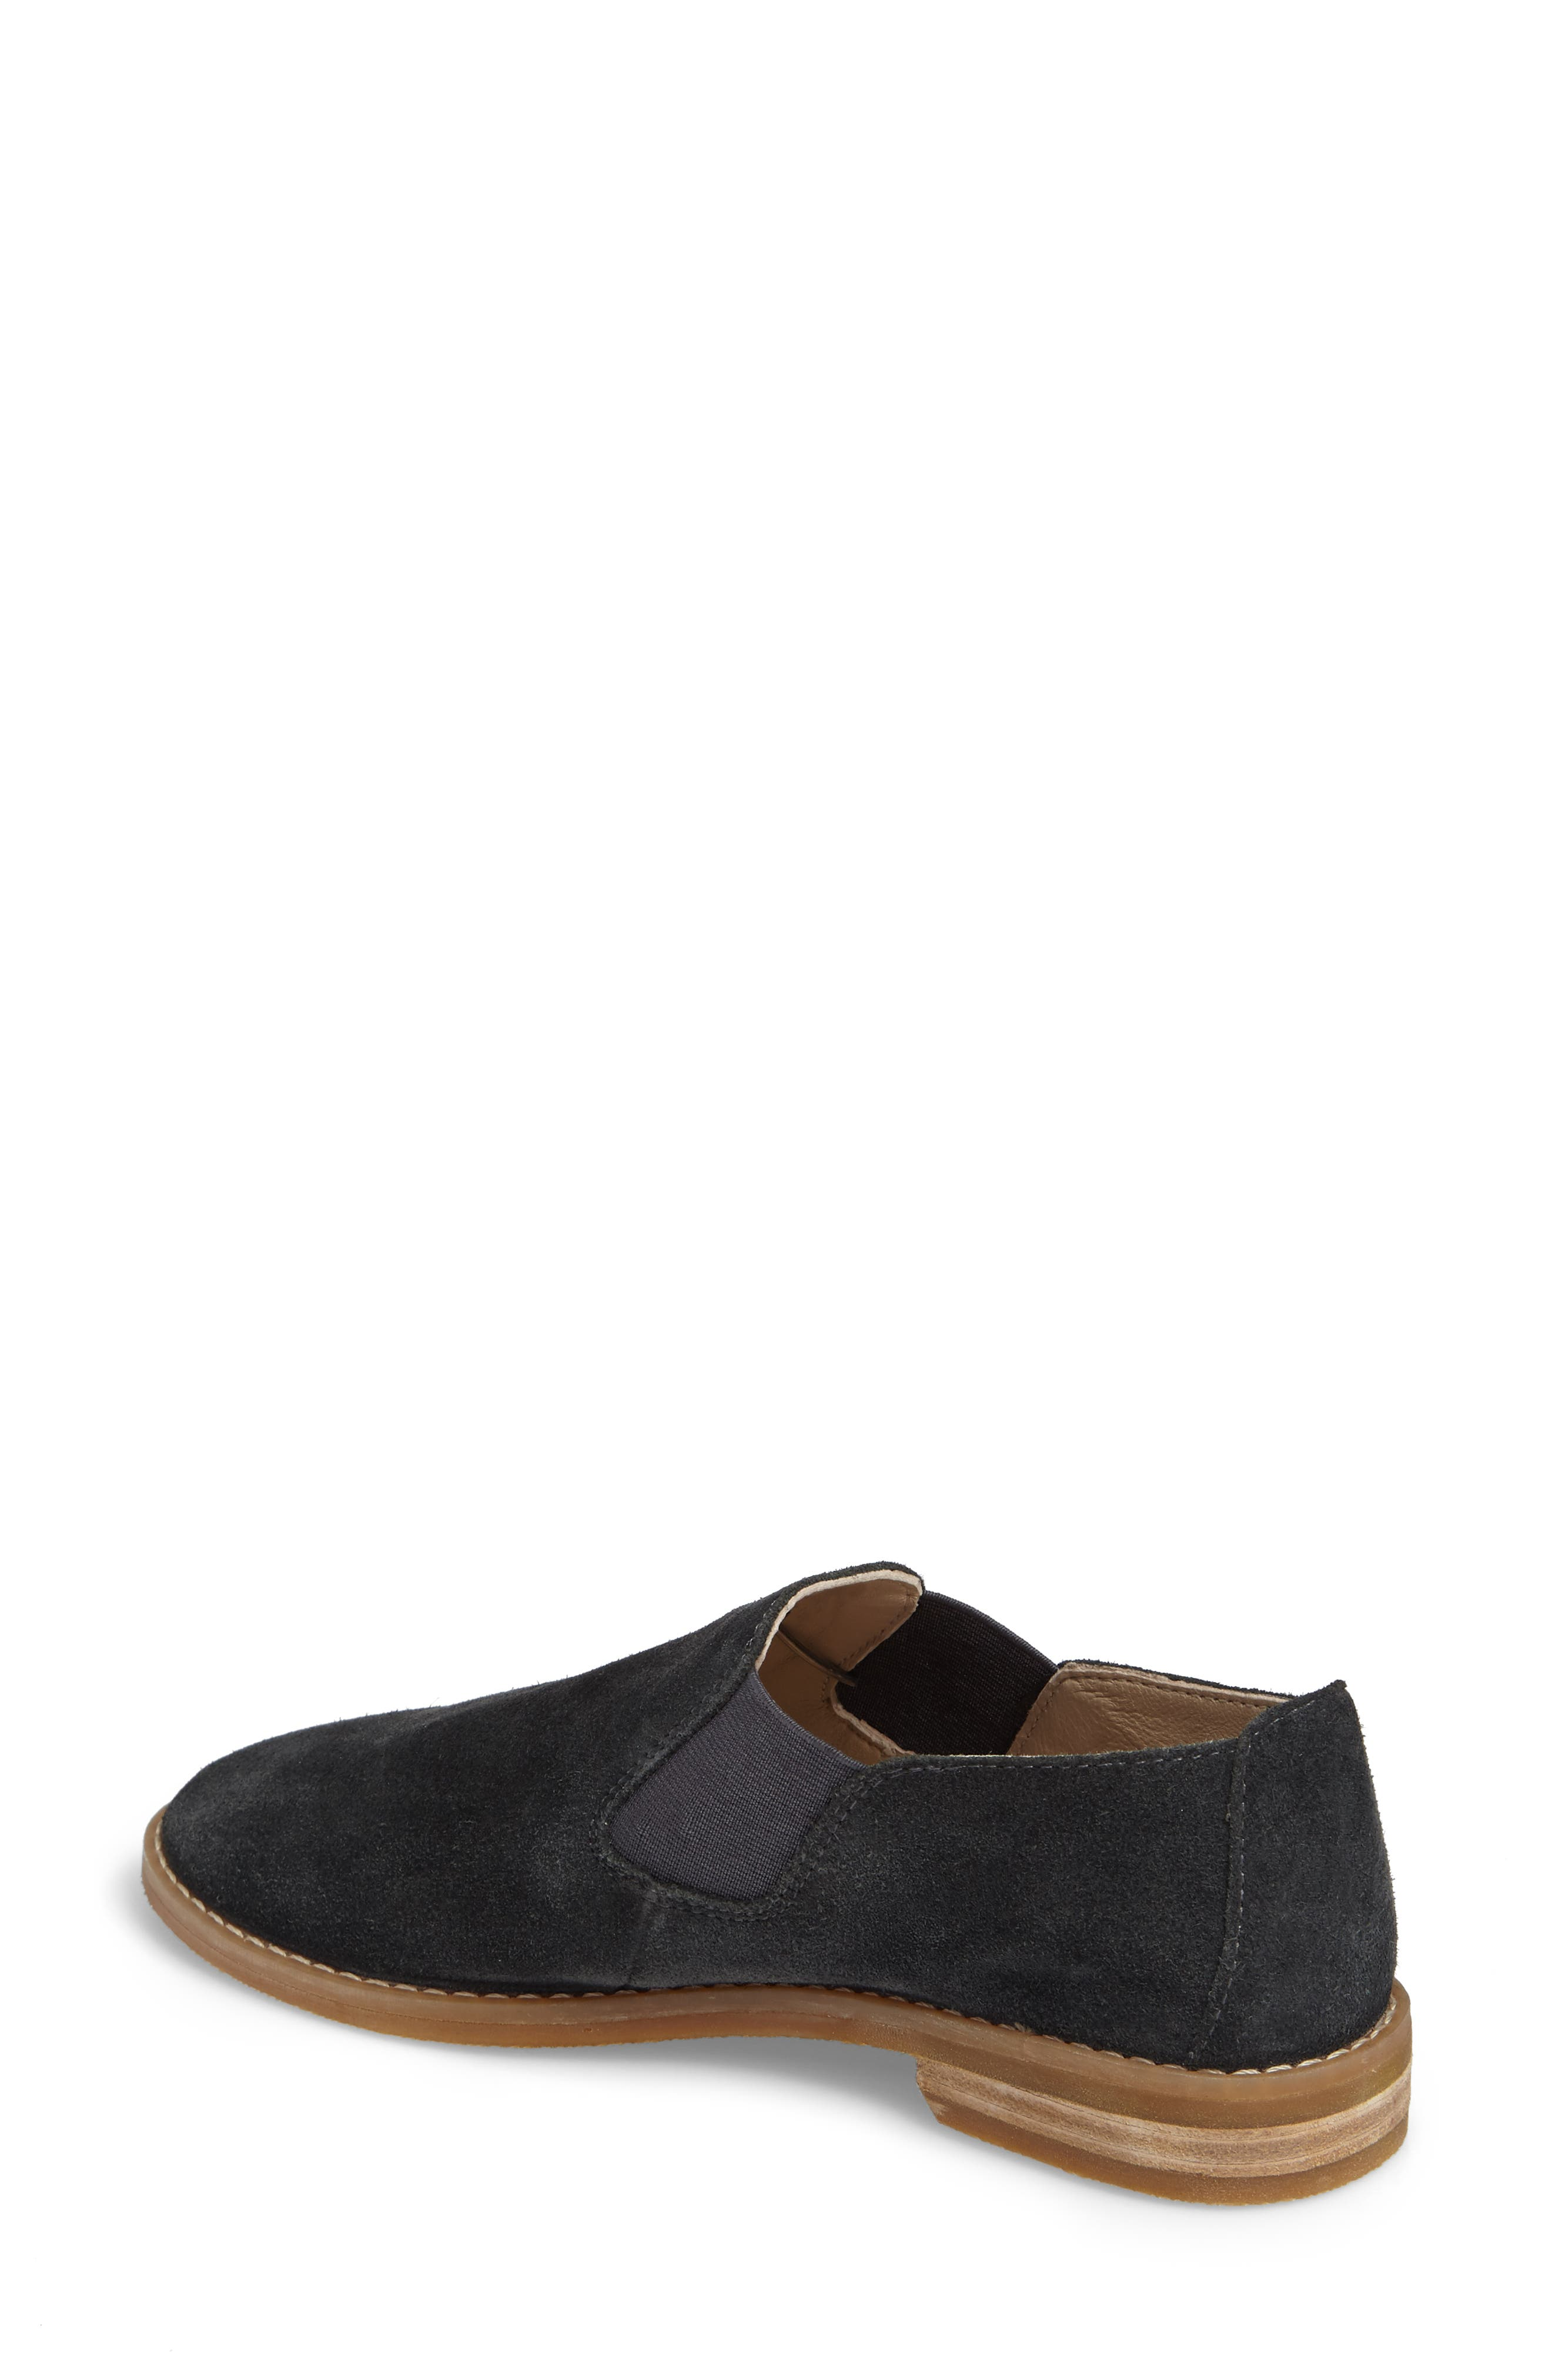 Analise Clever Flat,                             Alternate thumbnail 2, color,                             Granite Gray Suede